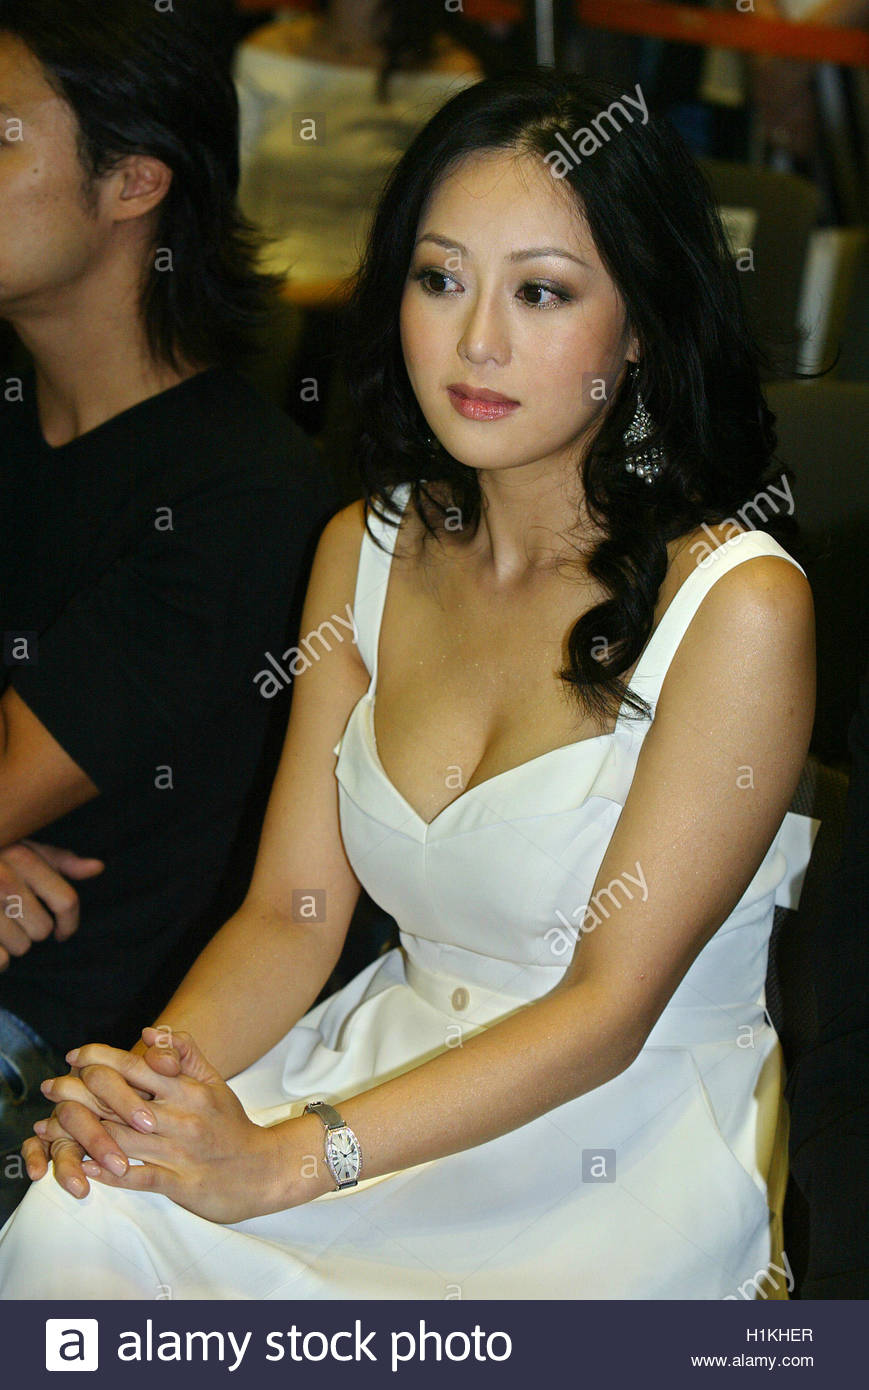 hong kong actress teresa cheung attends the hong kong hong kong actress teresa cheung attends the hong kong international film and tv market 2004 expo in hong kong hong kong actress teresa cheung attends the